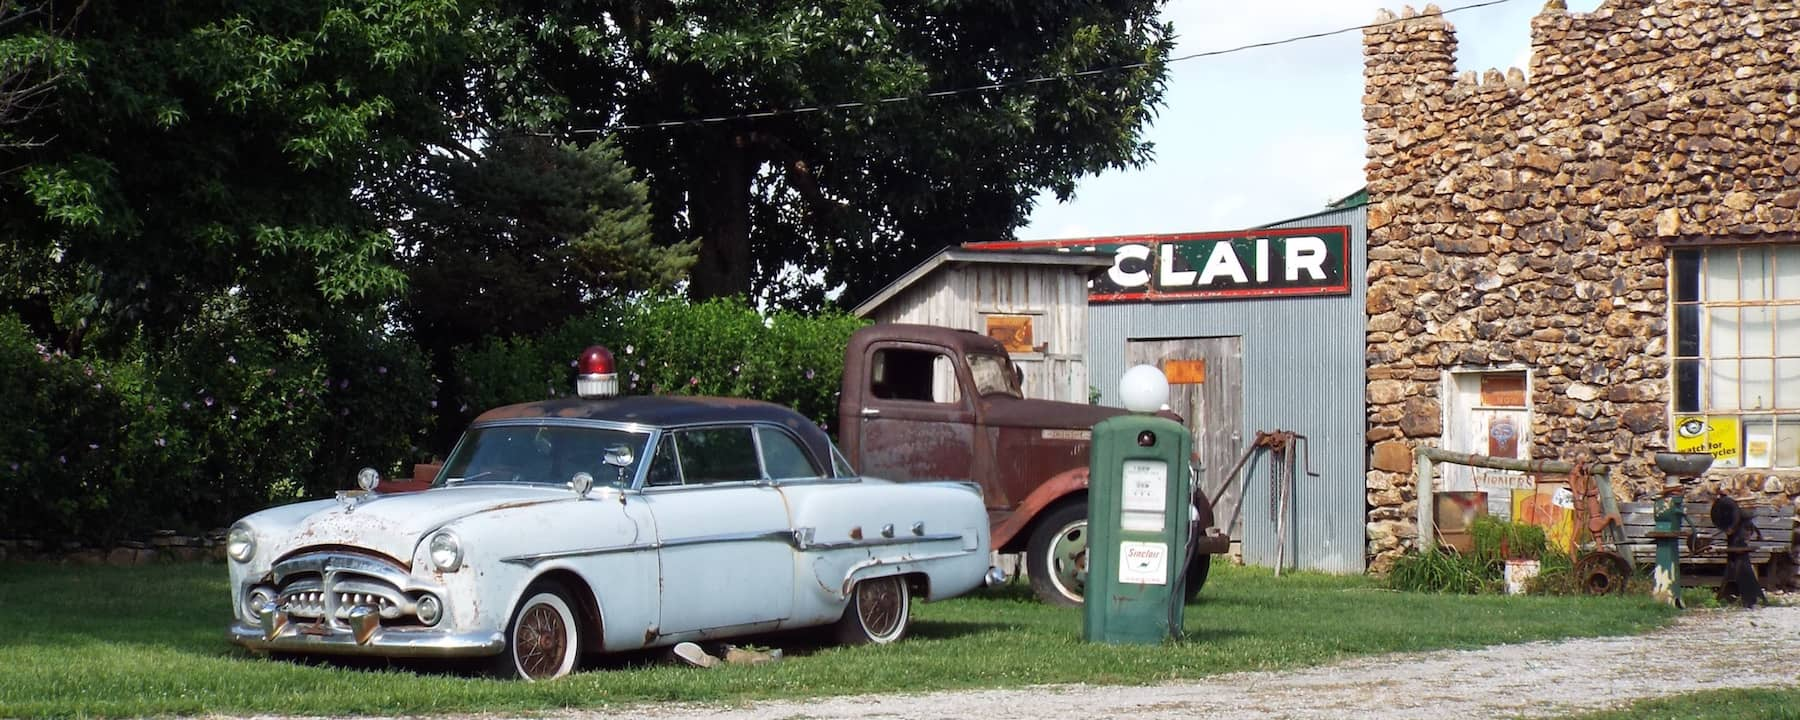 Cuba to Carthage Missouri and very special motel